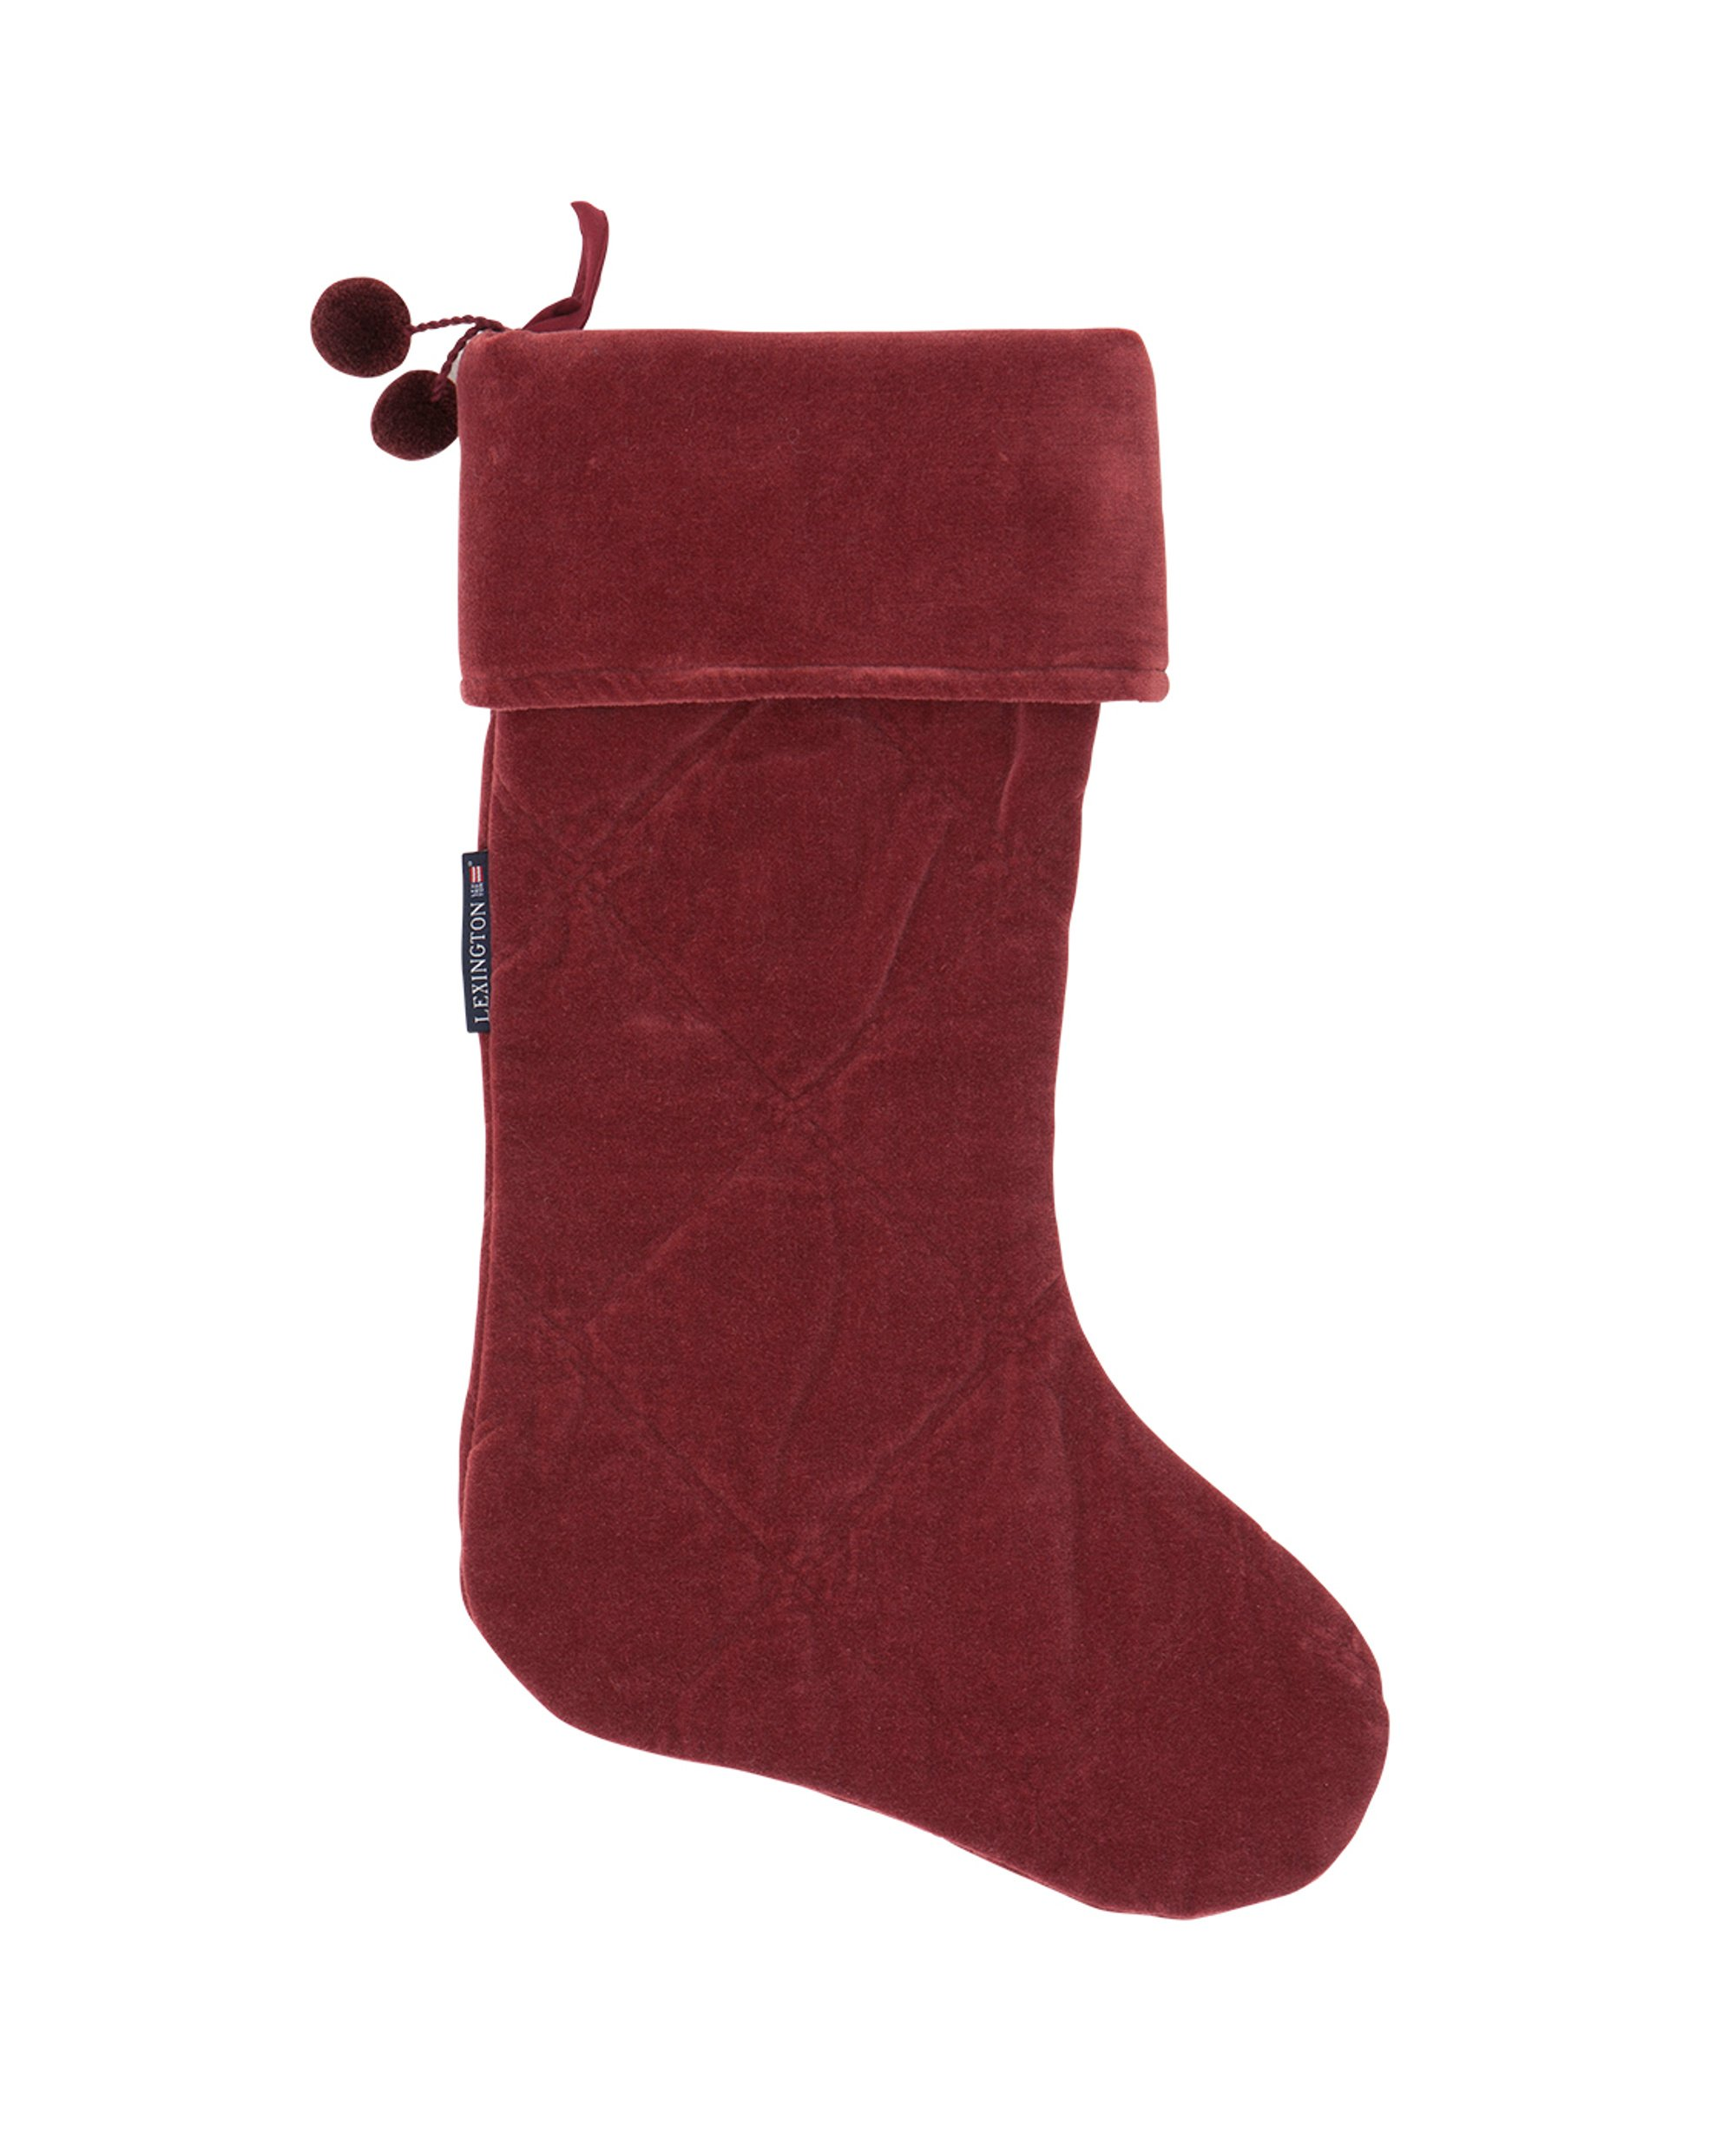 Holiday Christmas Stocking, Red